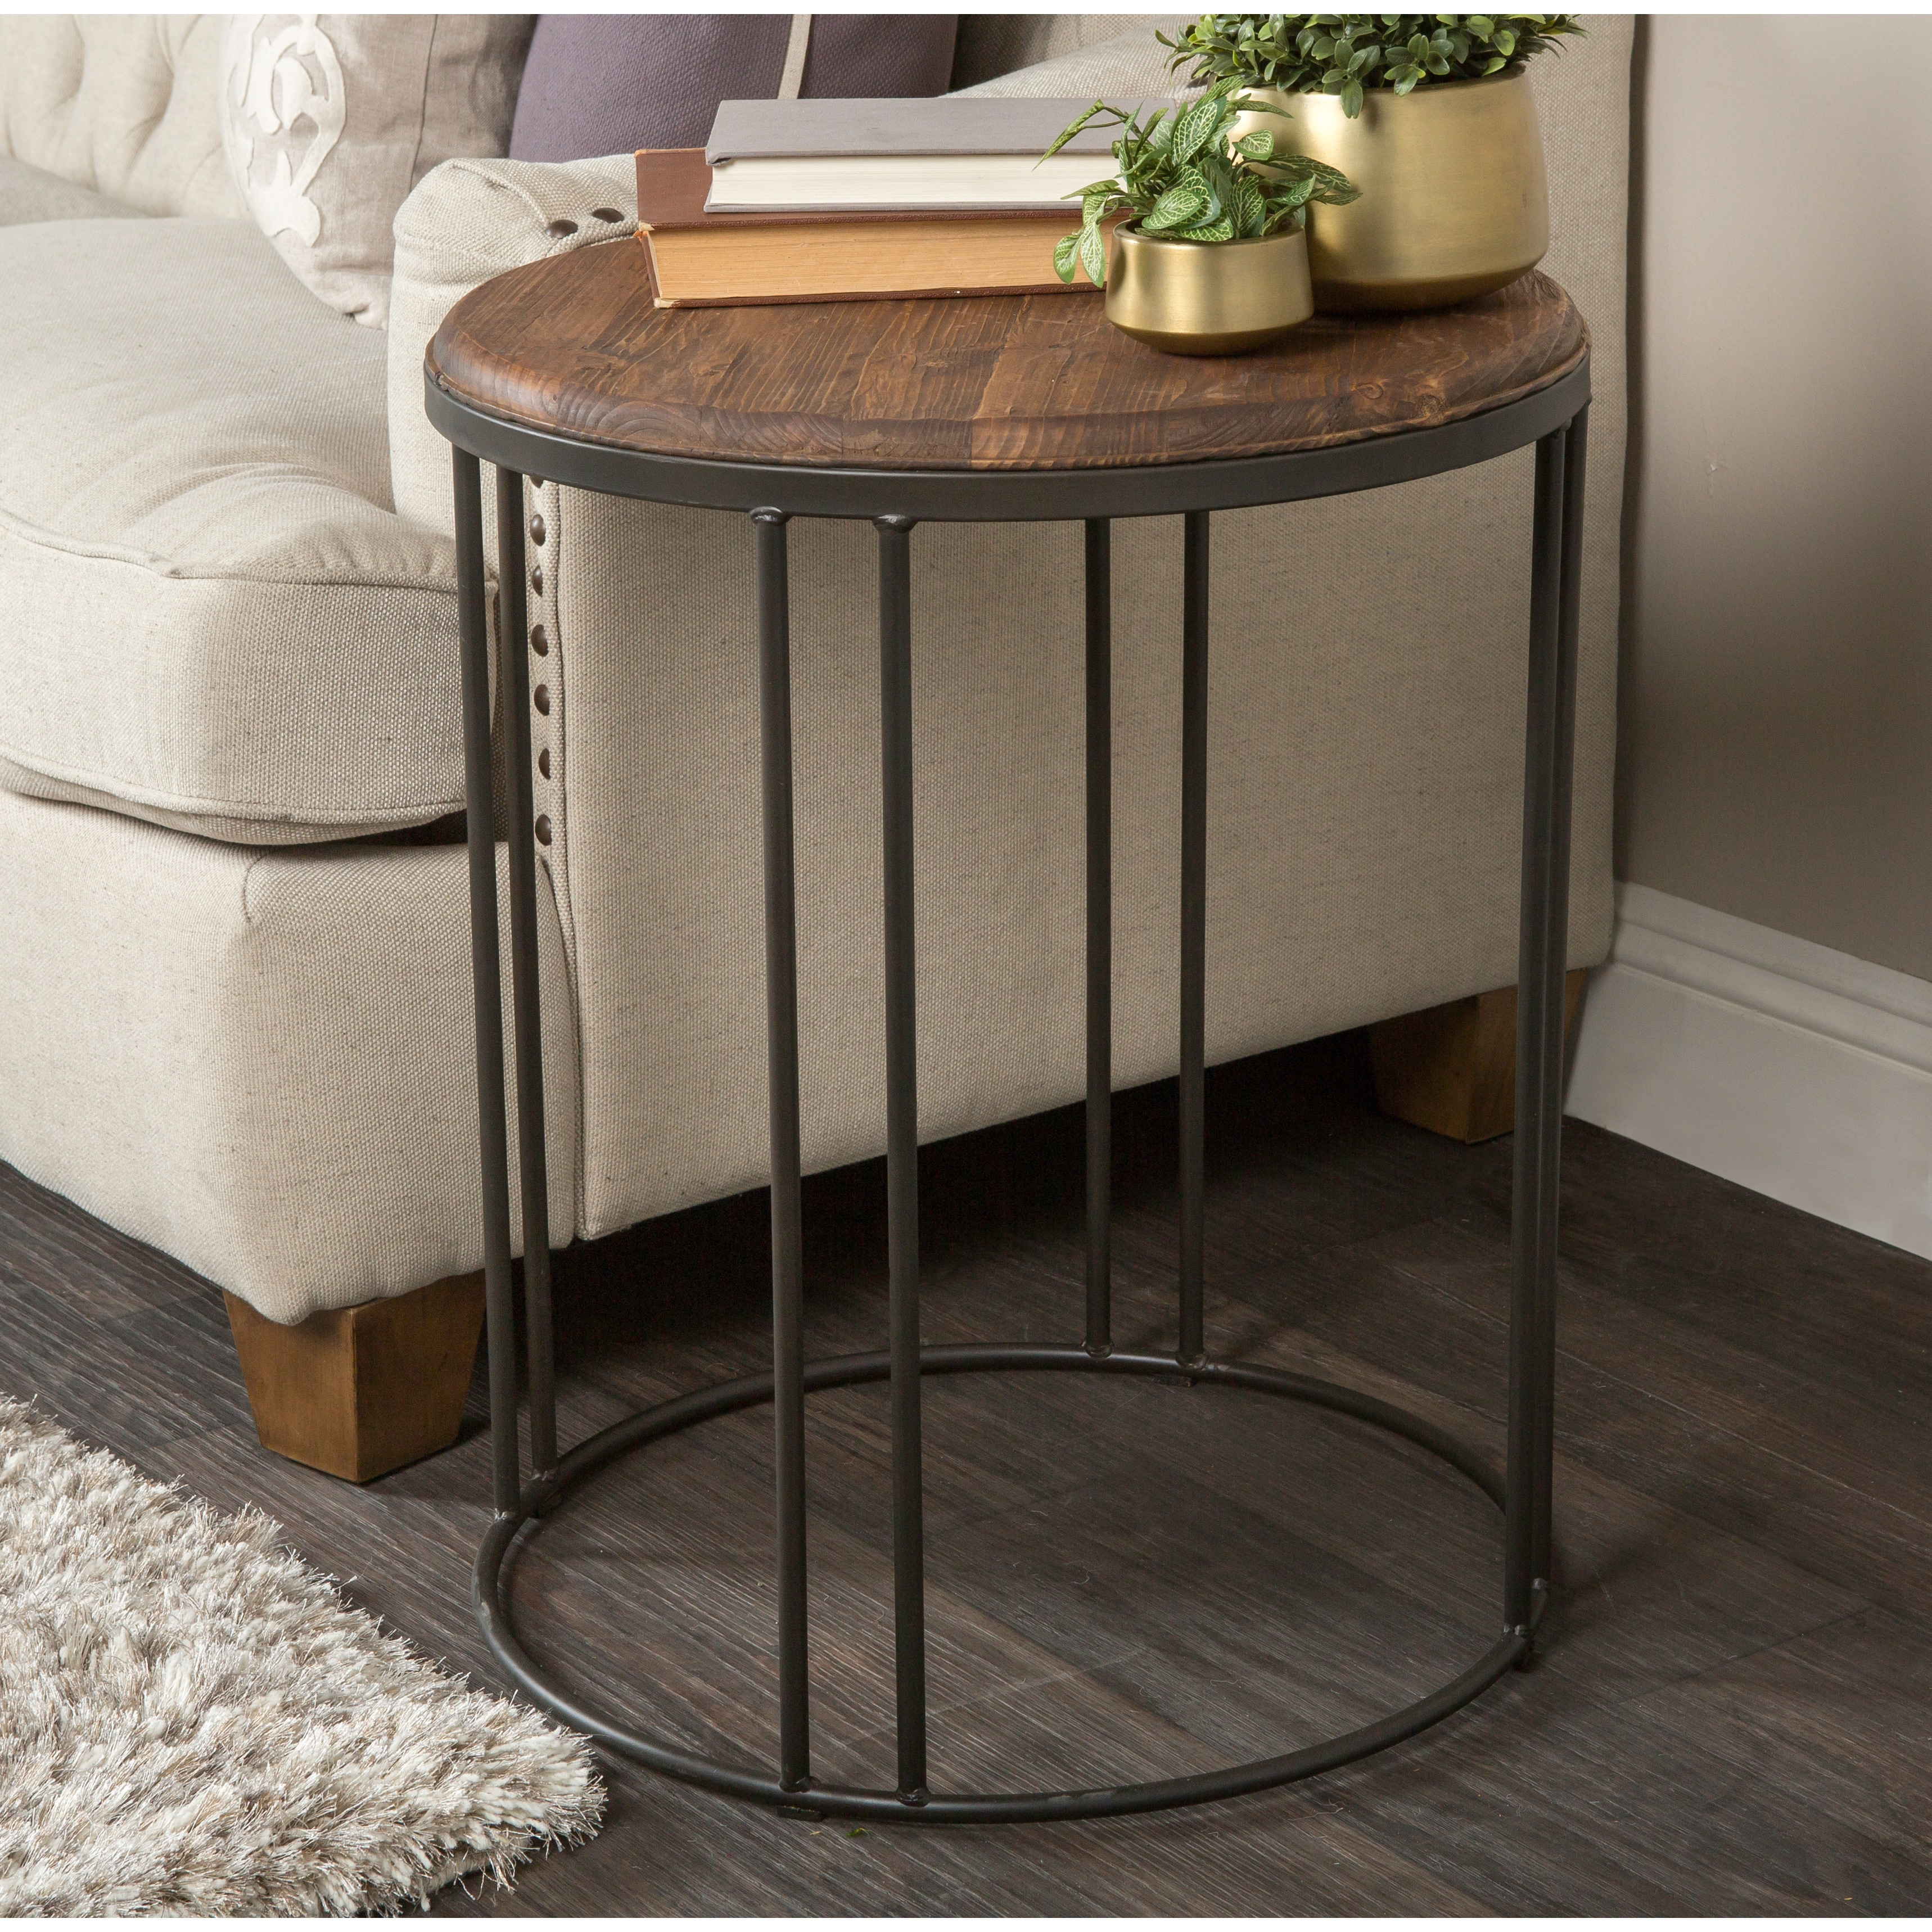 Industrial Side Table Wooden Round Tabletop Metal Frame Distress Black Legs